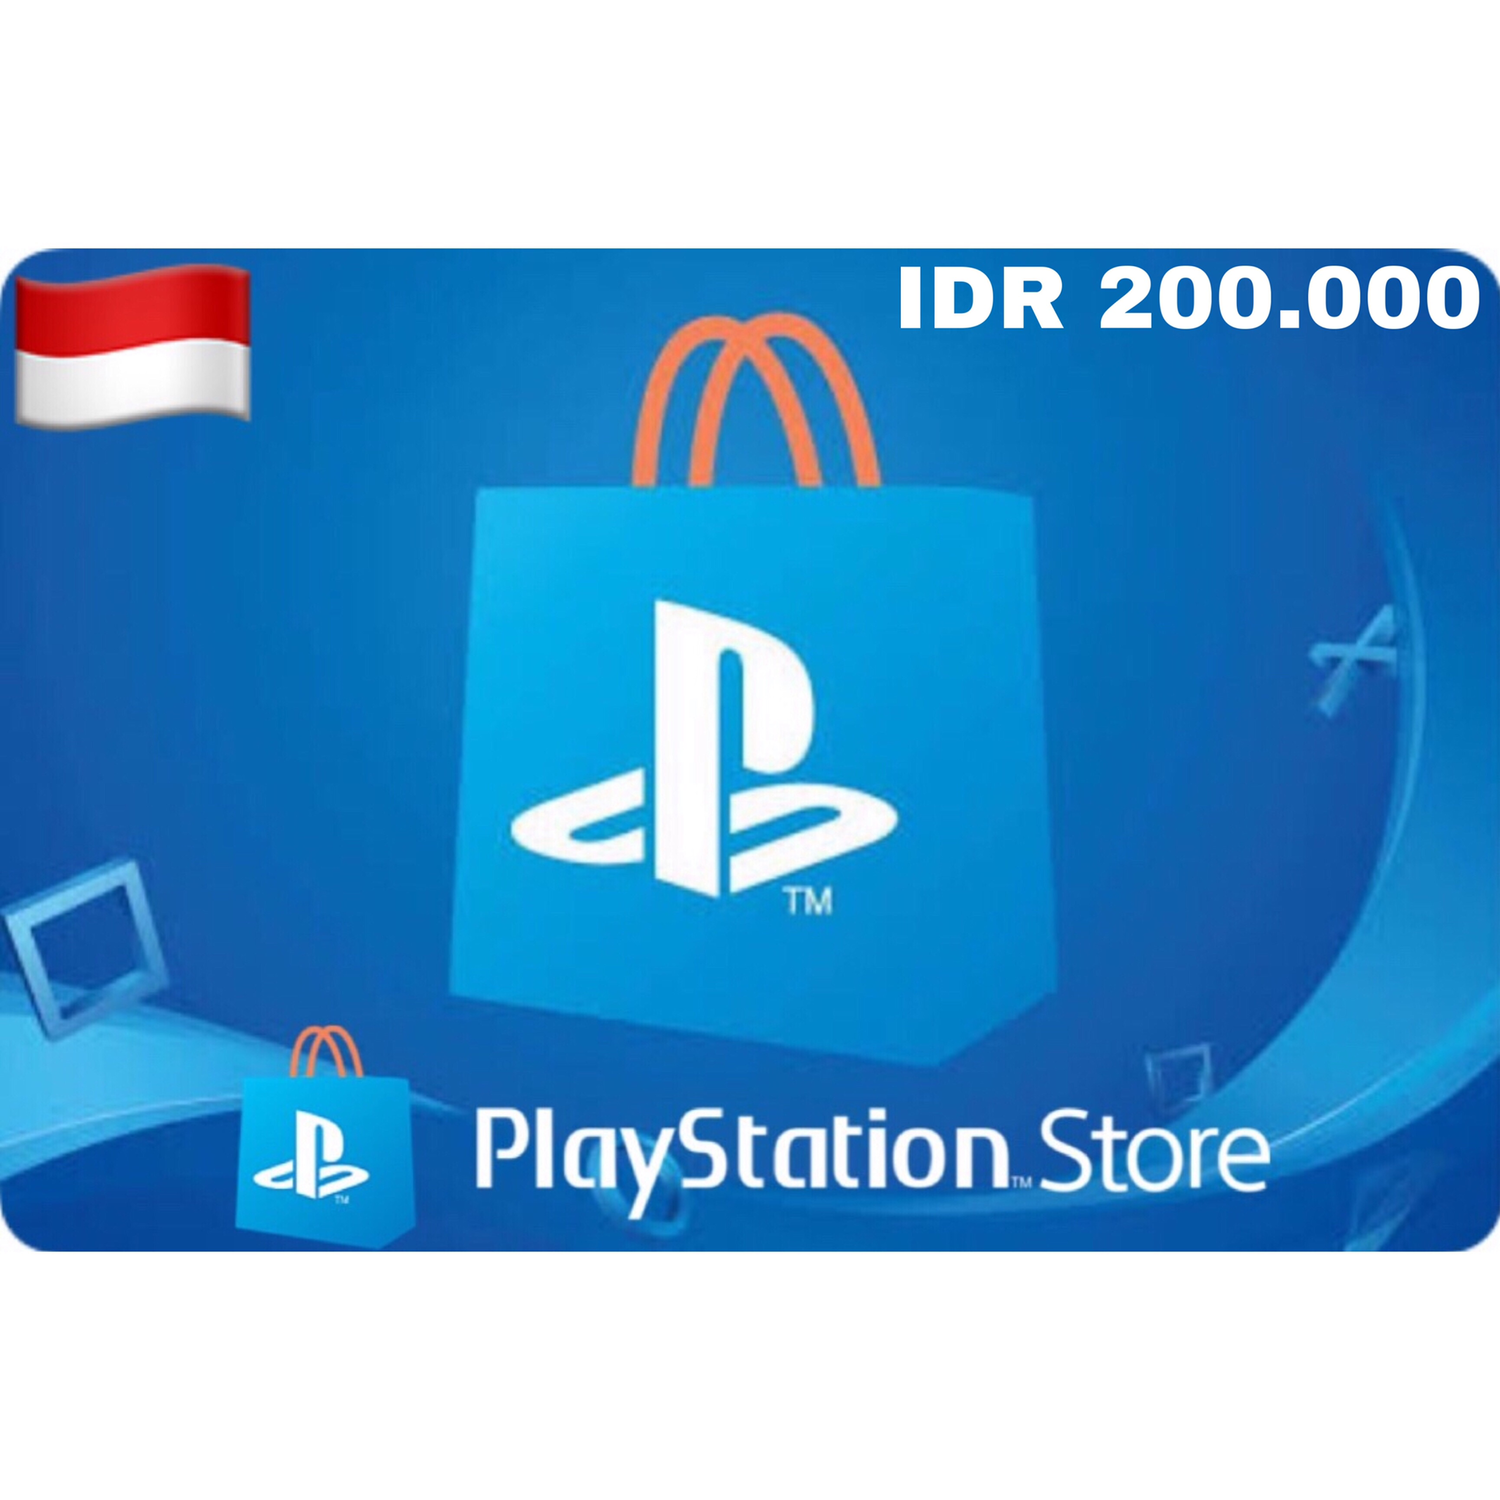 PSN Card - Playstation Network Indonesia IDR 200.000